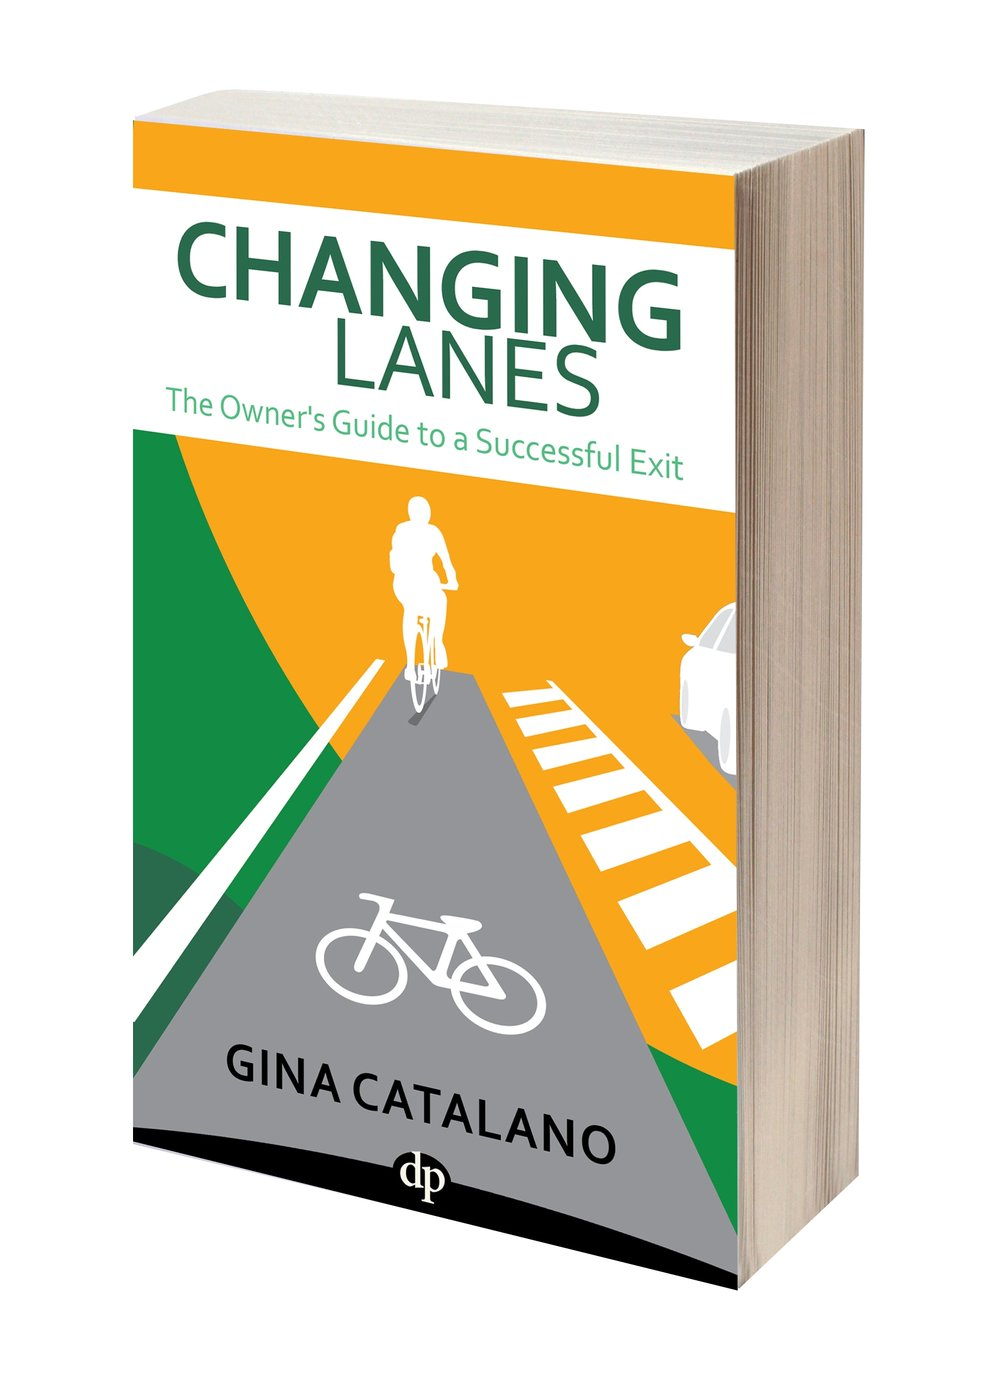 Changing Lanes by Gina Catalano - Click to download